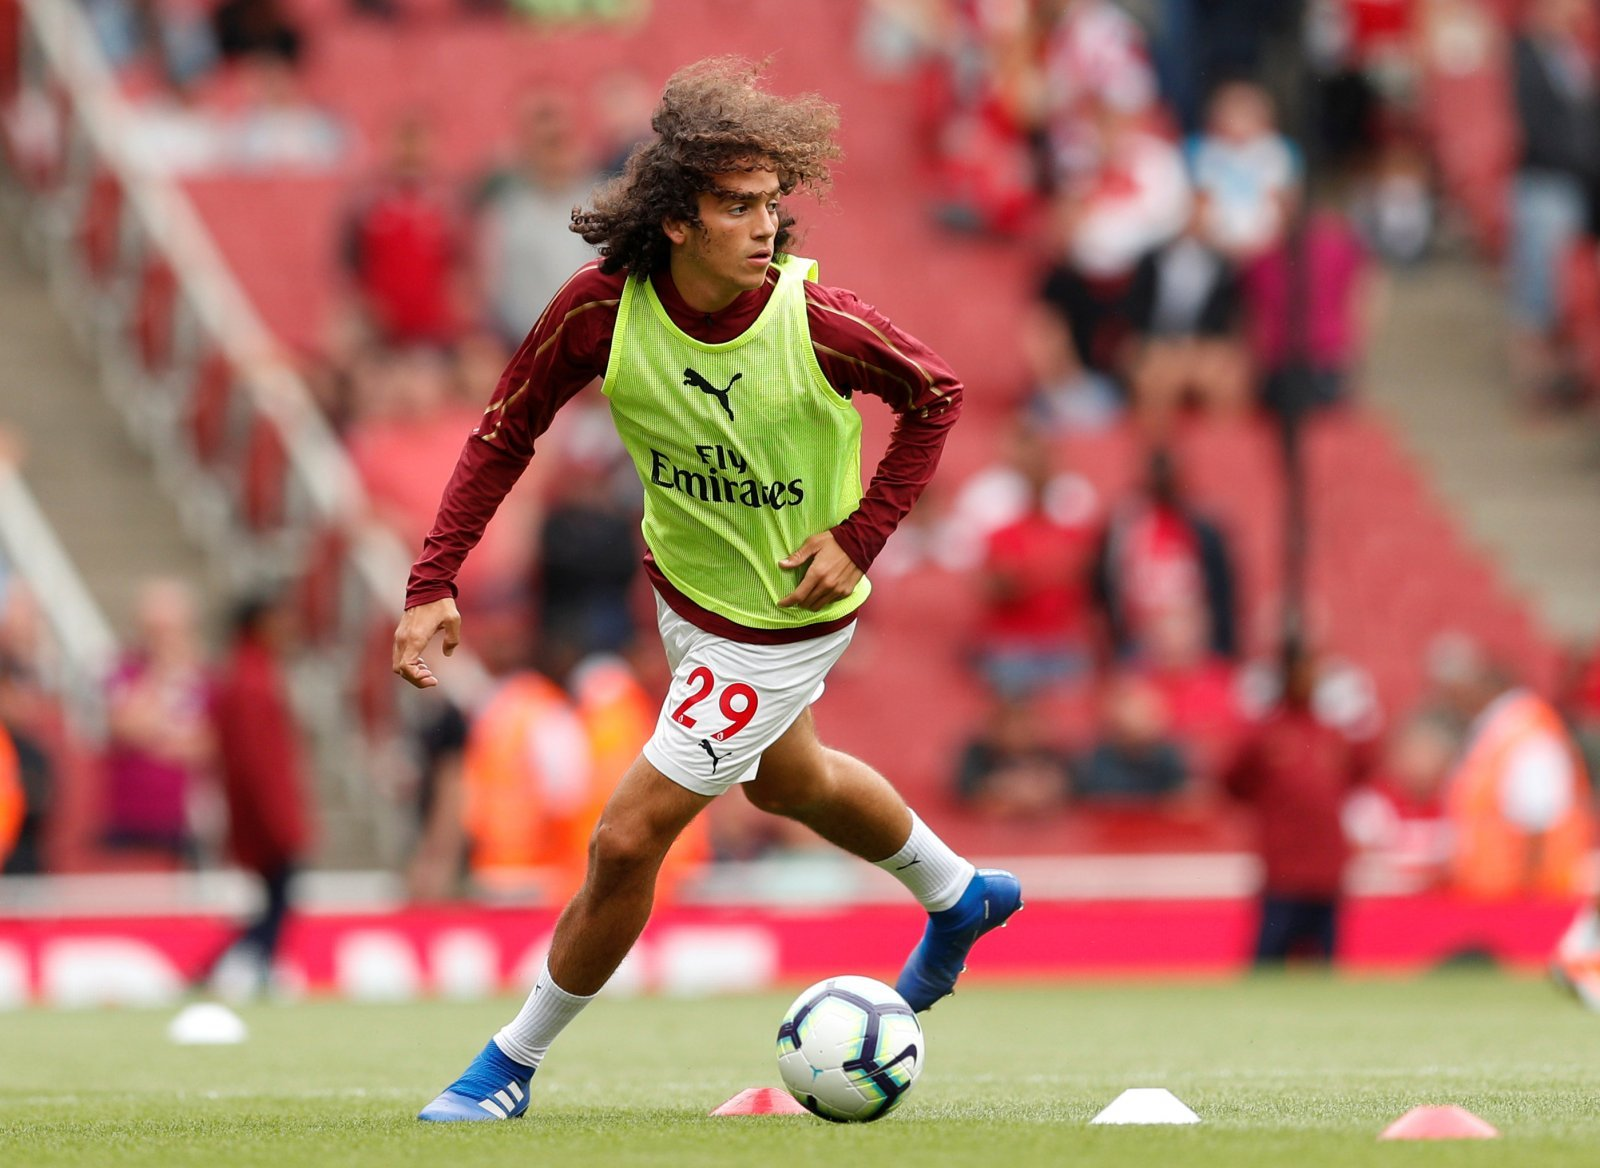 Arsenal fans took to Twitter to slam Guendouzi for costing them a clean sheet